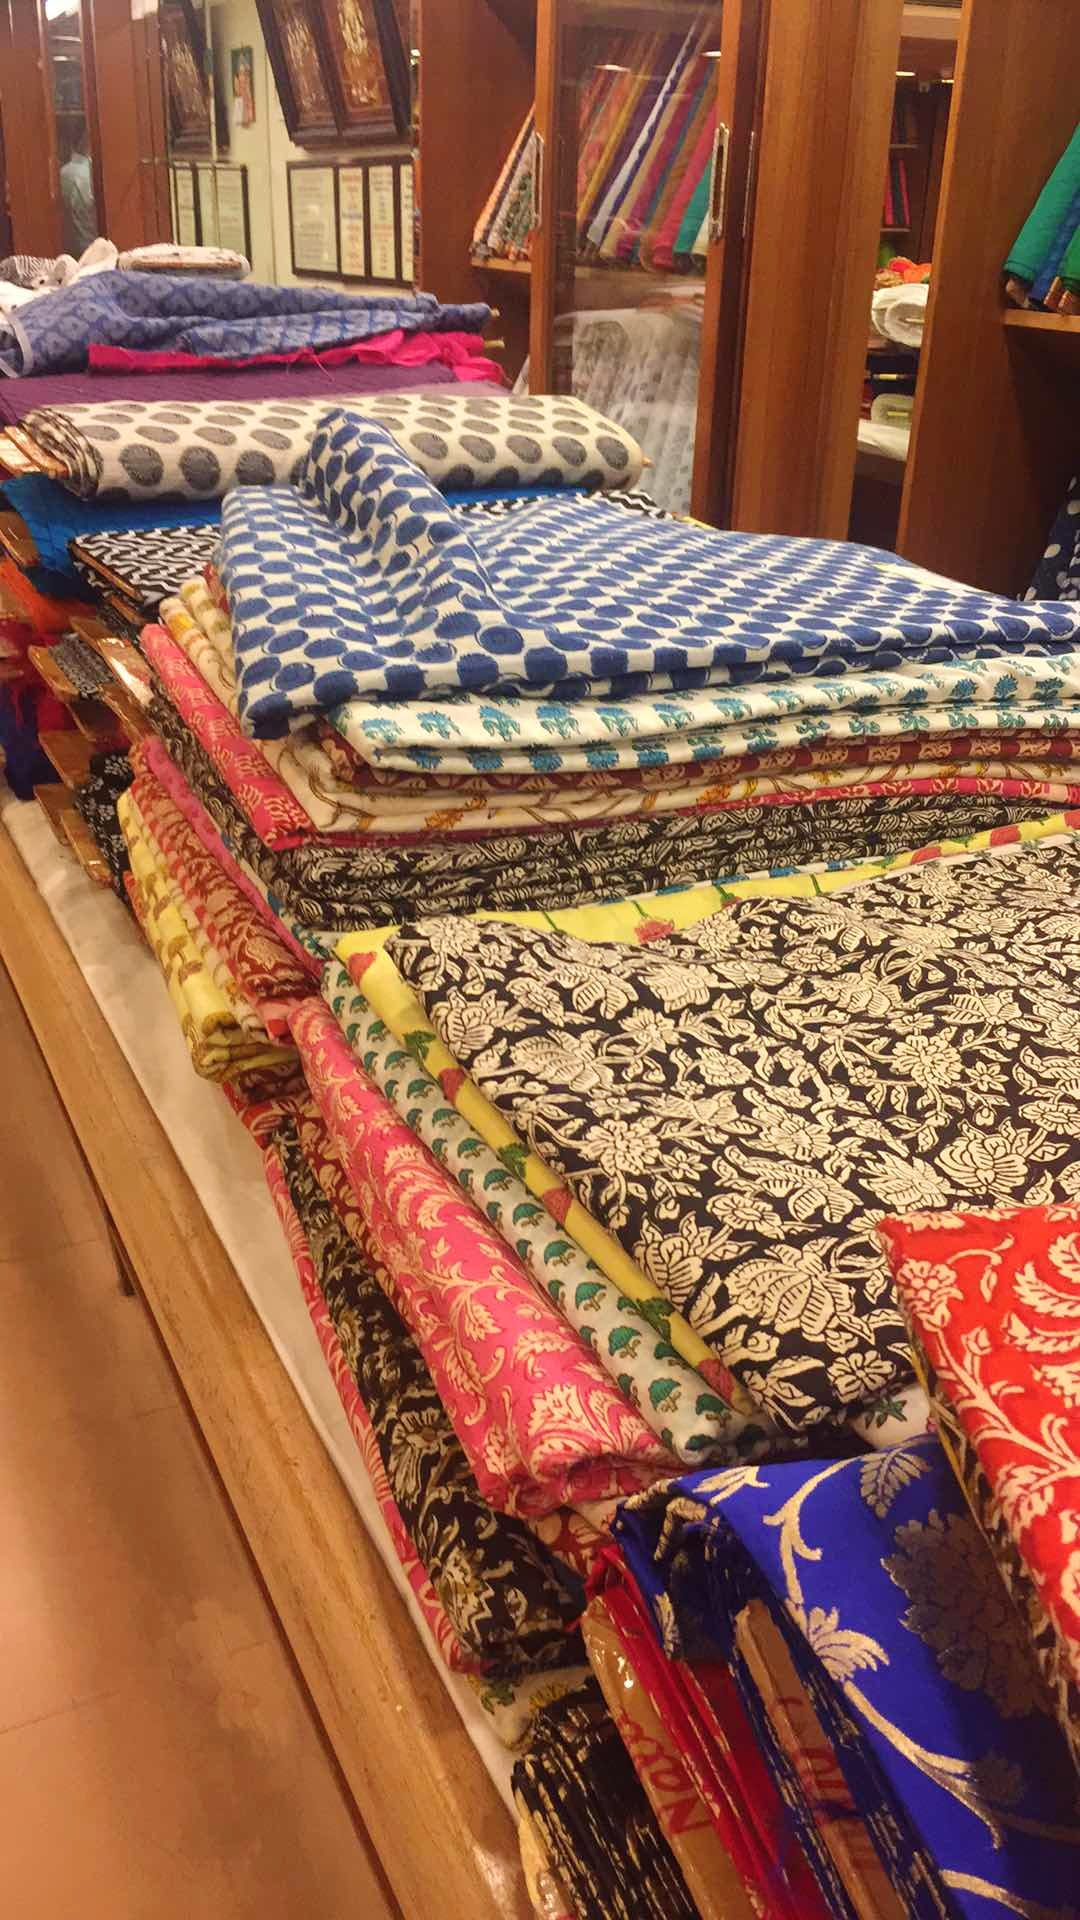 Textile,Bed sheet,Room,Quilting,Woven fabric,Quilt,Linens,Furniture,Carpet,Flooring